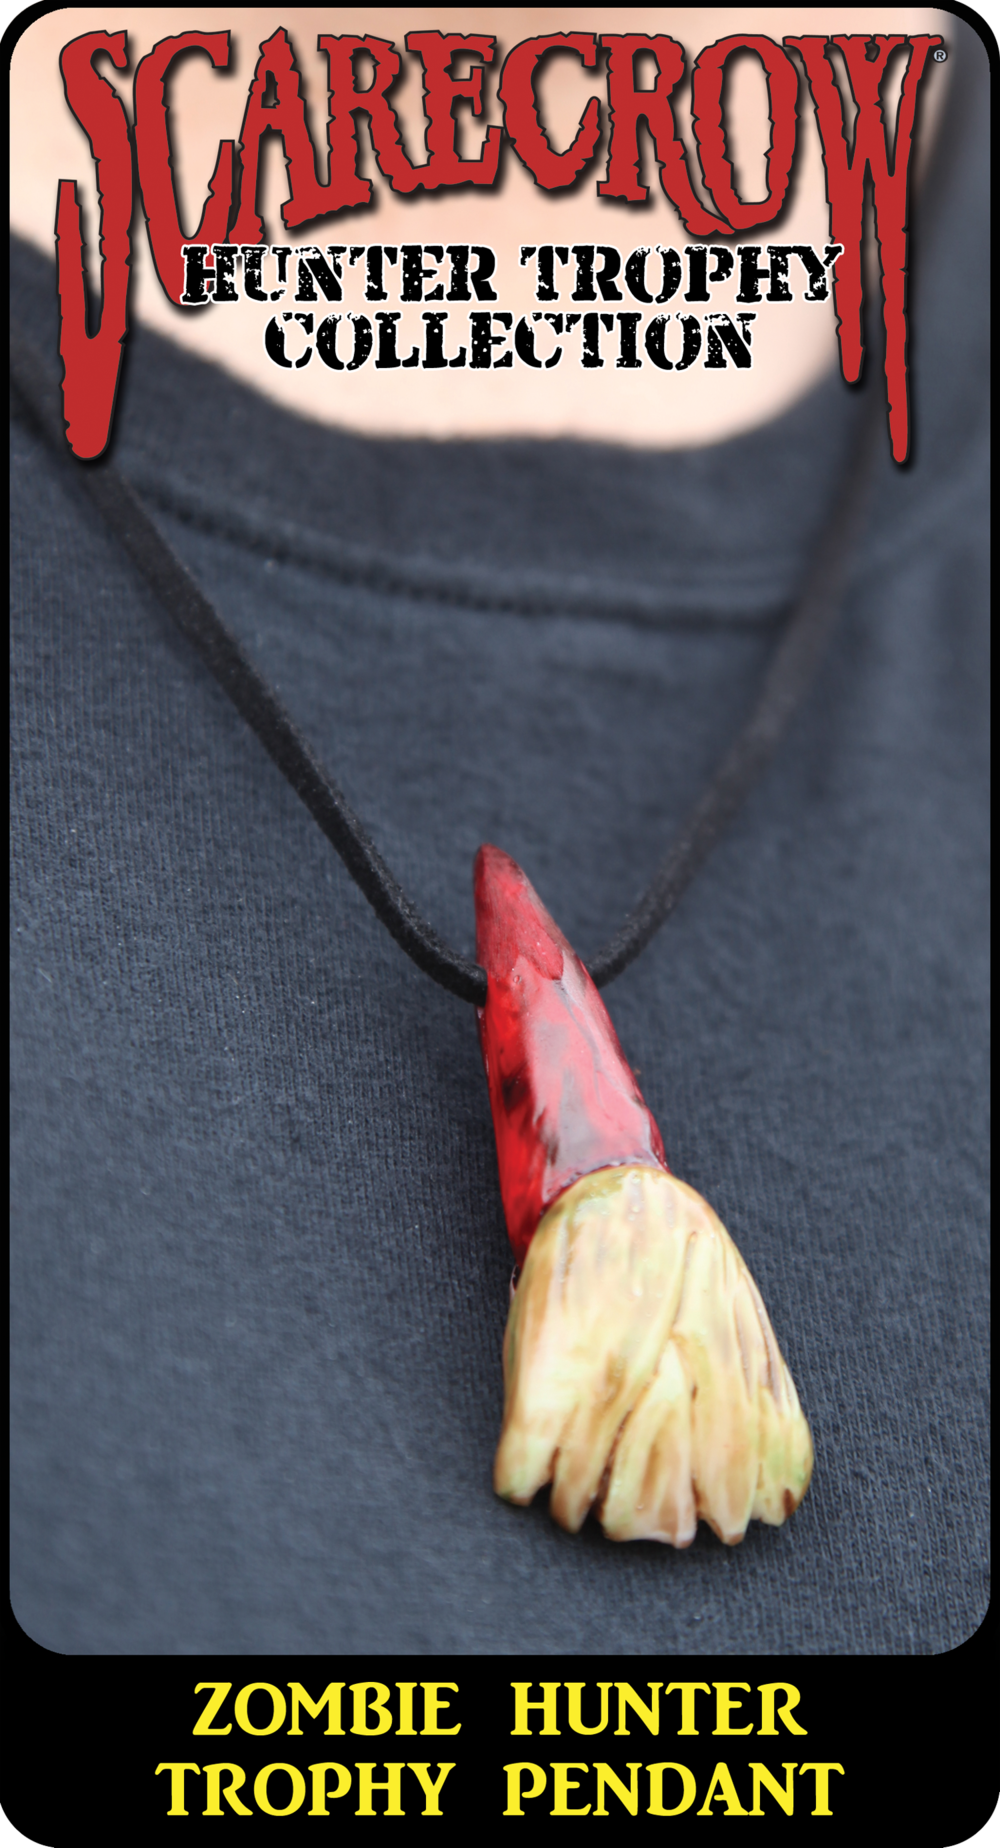 Zombie Hunter Trophy Pendant (TZP730)